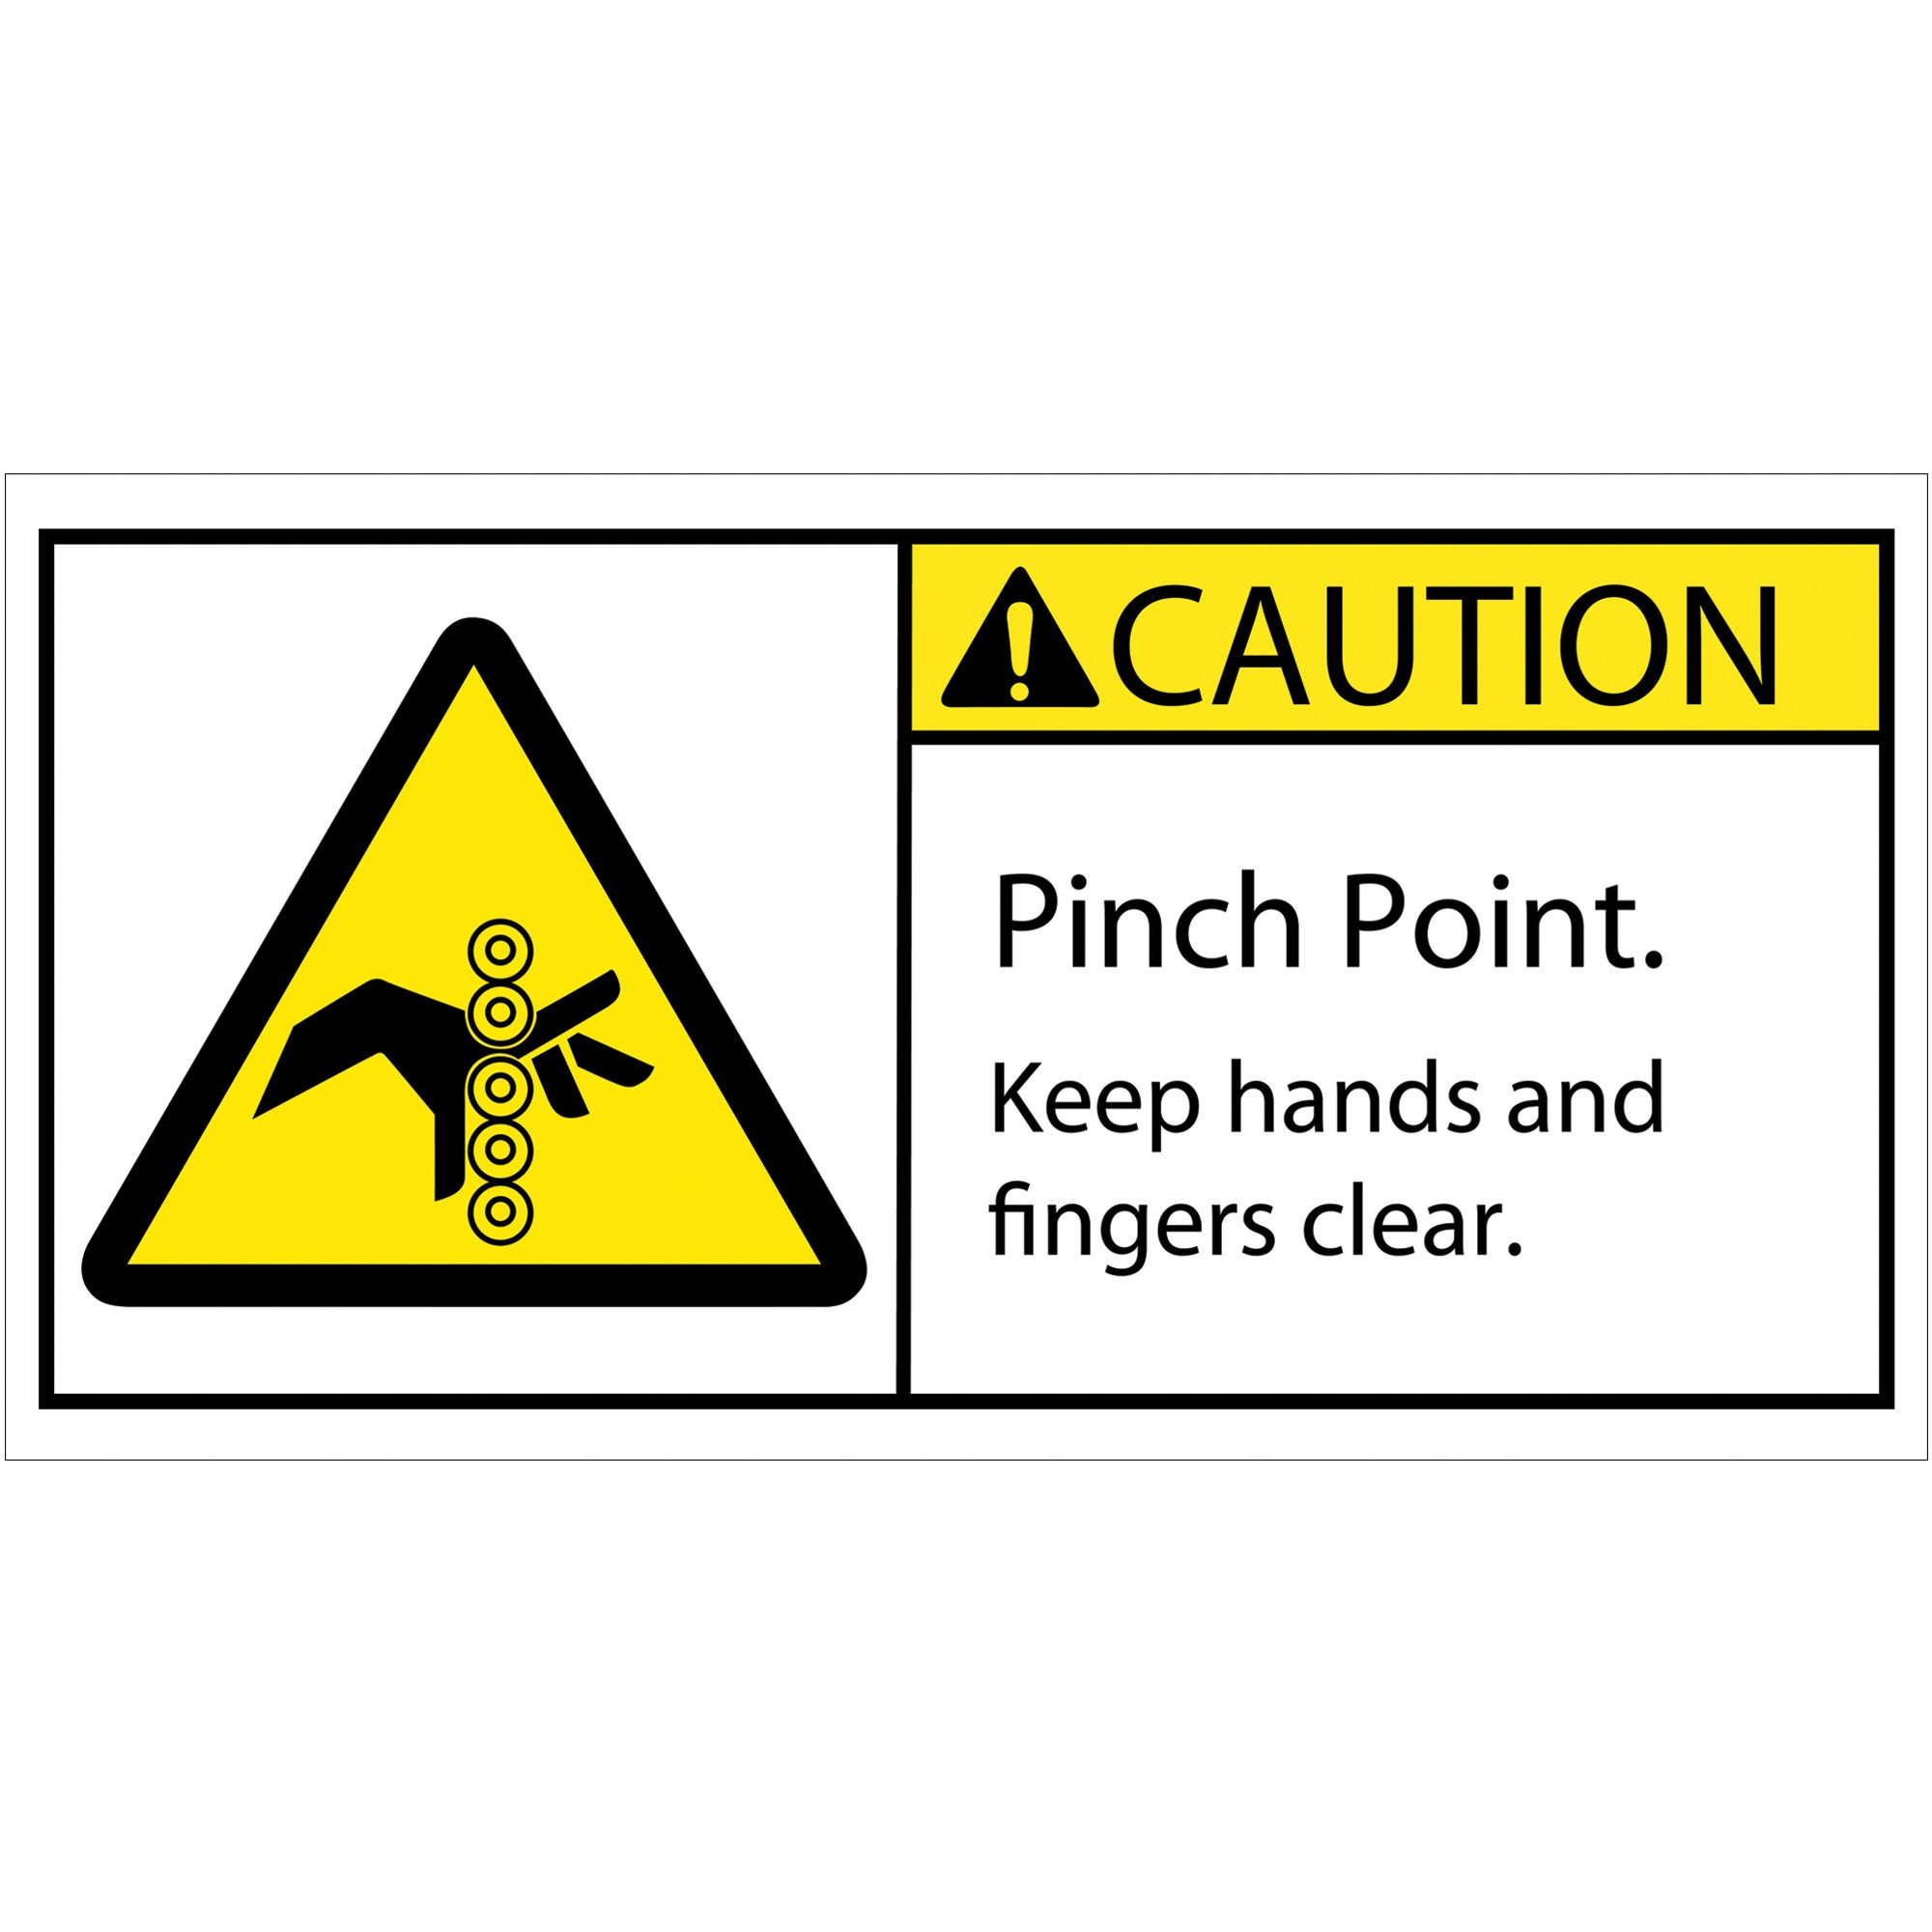 Aviditi DSL522 Tape Logic Caution Pinch Point Rollers Durable Safety Label, 2'' x 4'', Multi-Color (1 Roll of 25 Labels)